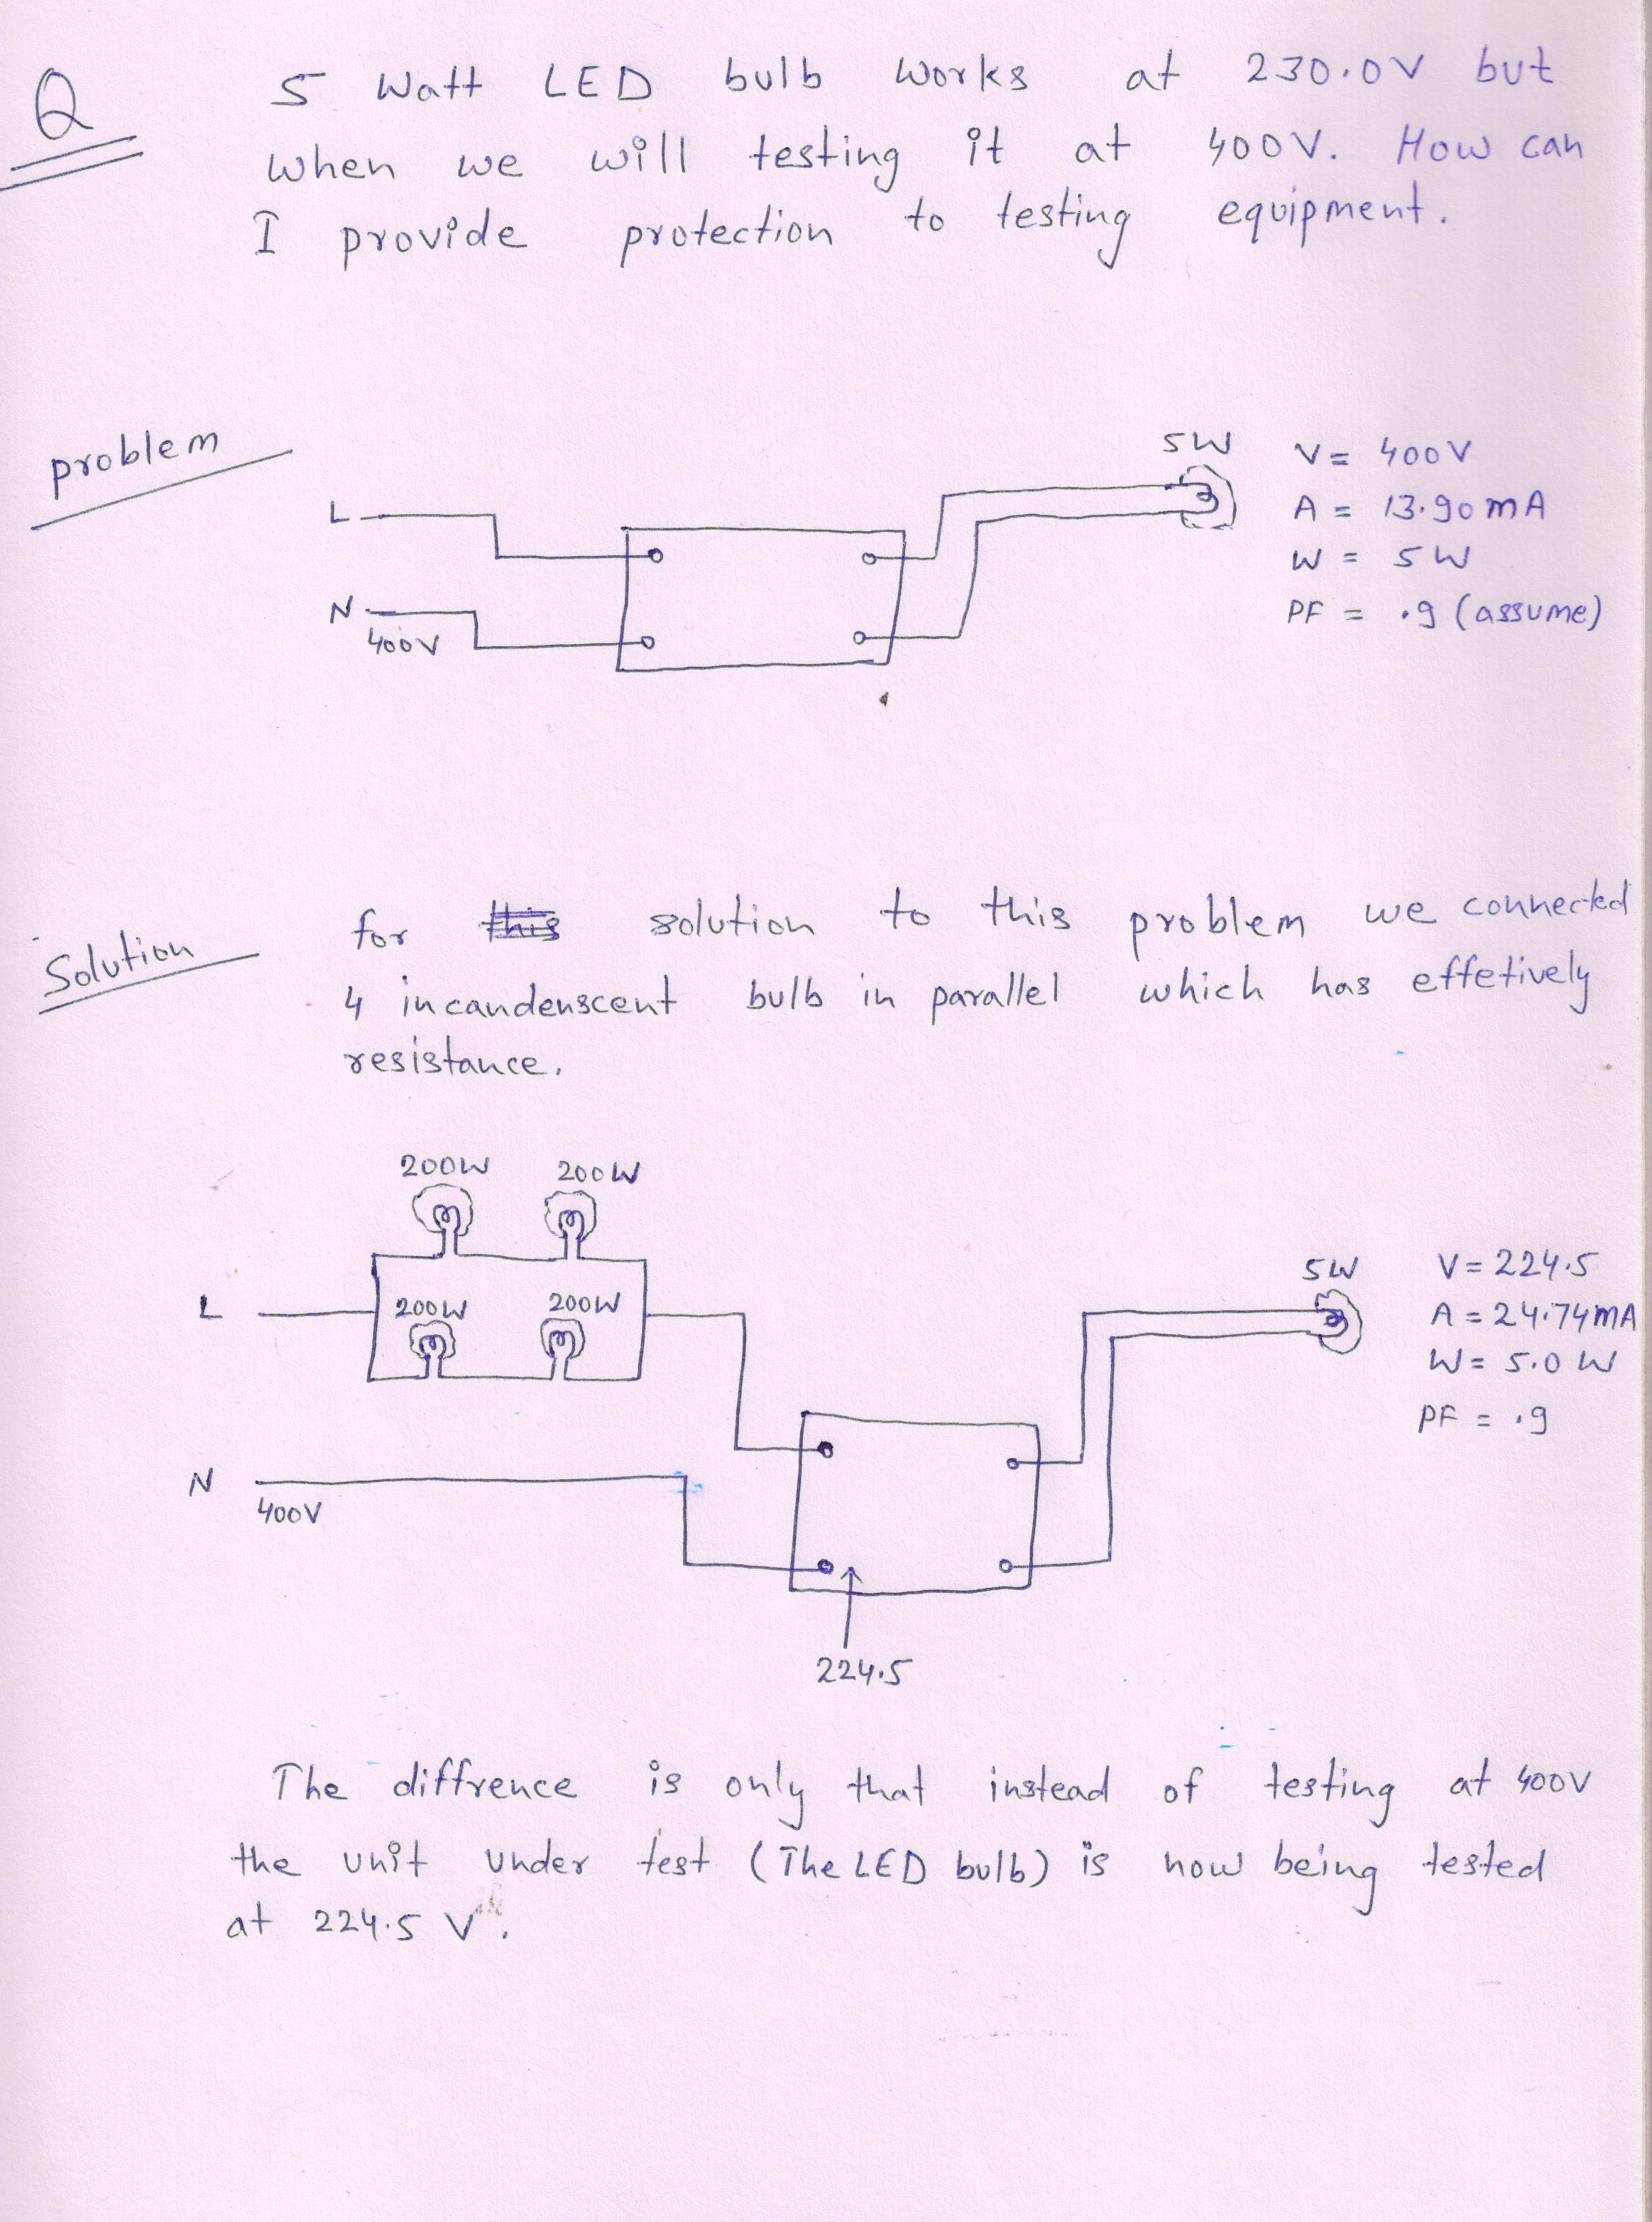 How To Provide Short Circuit Protection Testing Equipment Led 18 W Cfl Diagram 5 Watt Bulb At 400 Voltagefor This Problem We A In Above Page